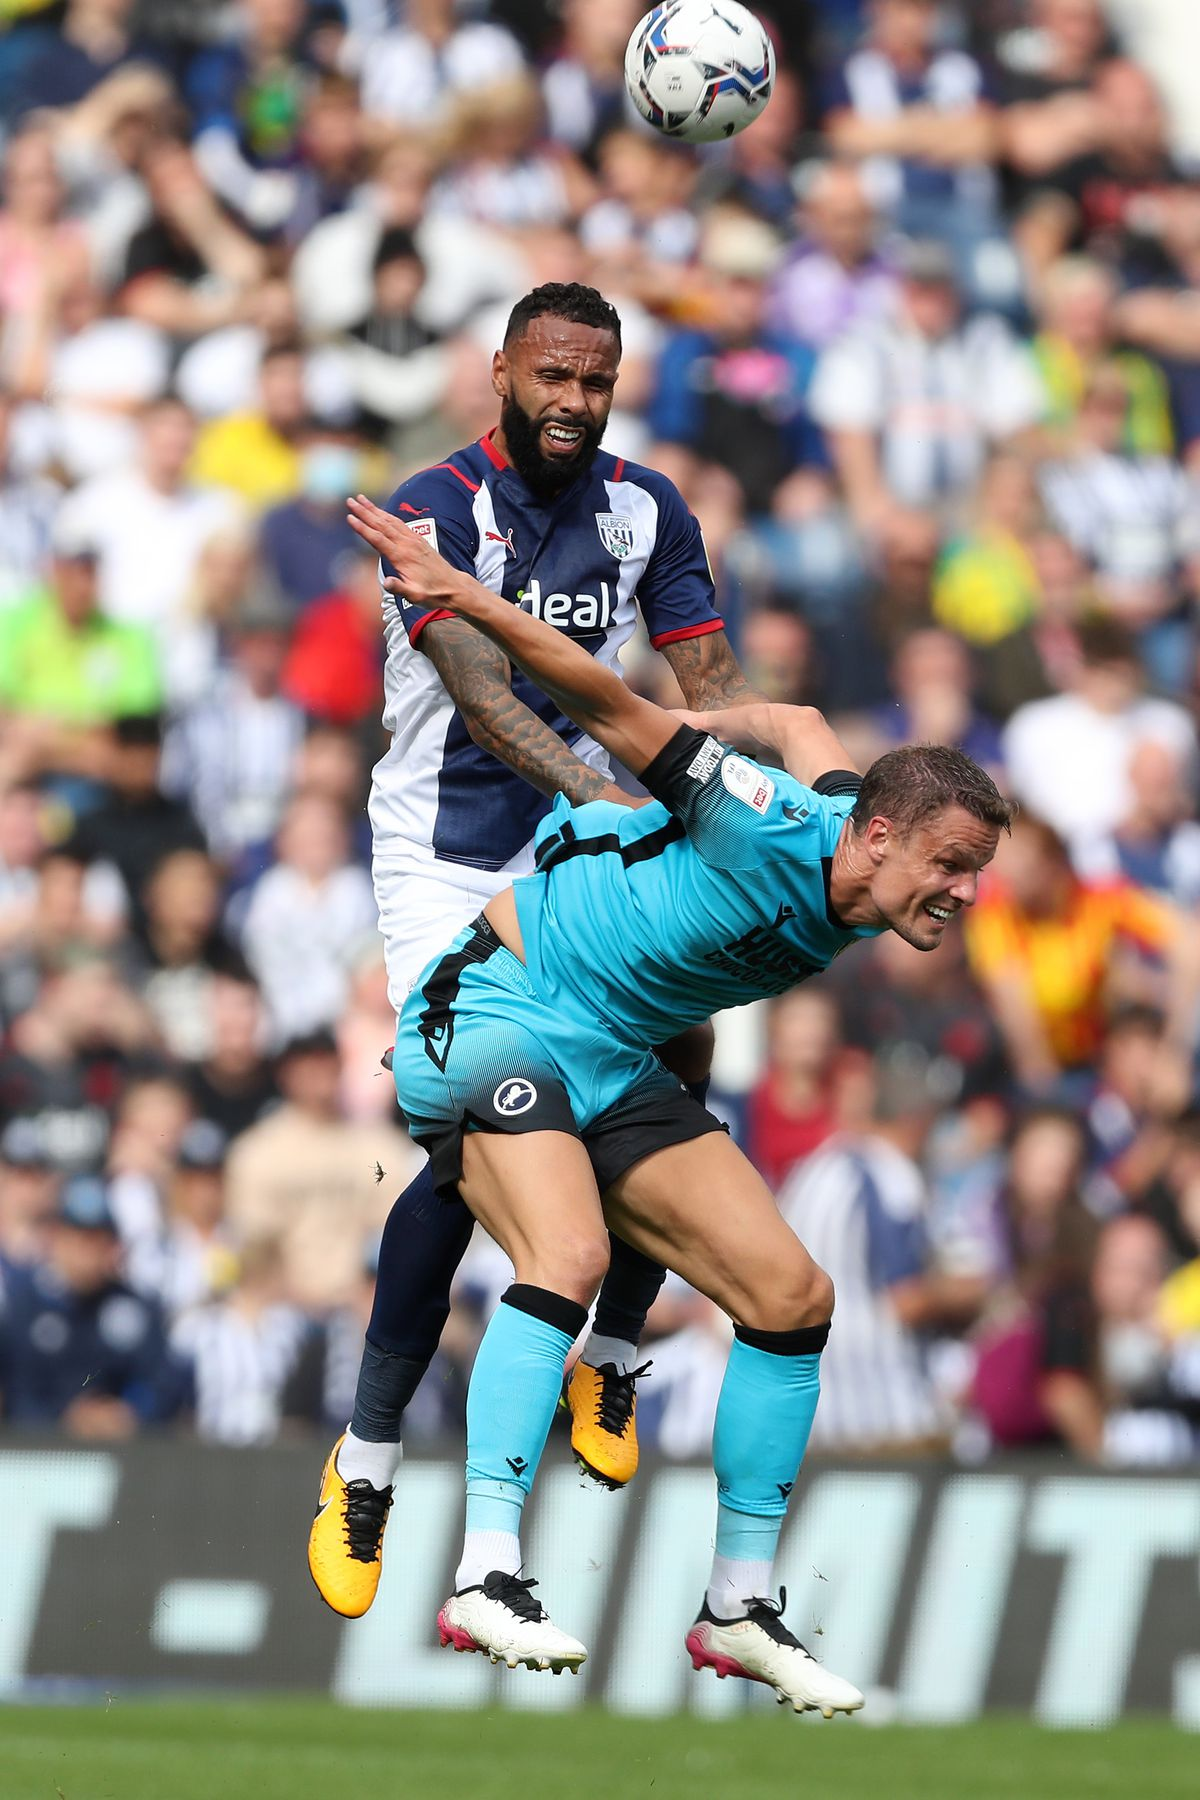 Kyle Bartley of West Bromwich Albion and Mathieu Smith of Millwall. (Photo: WBA)